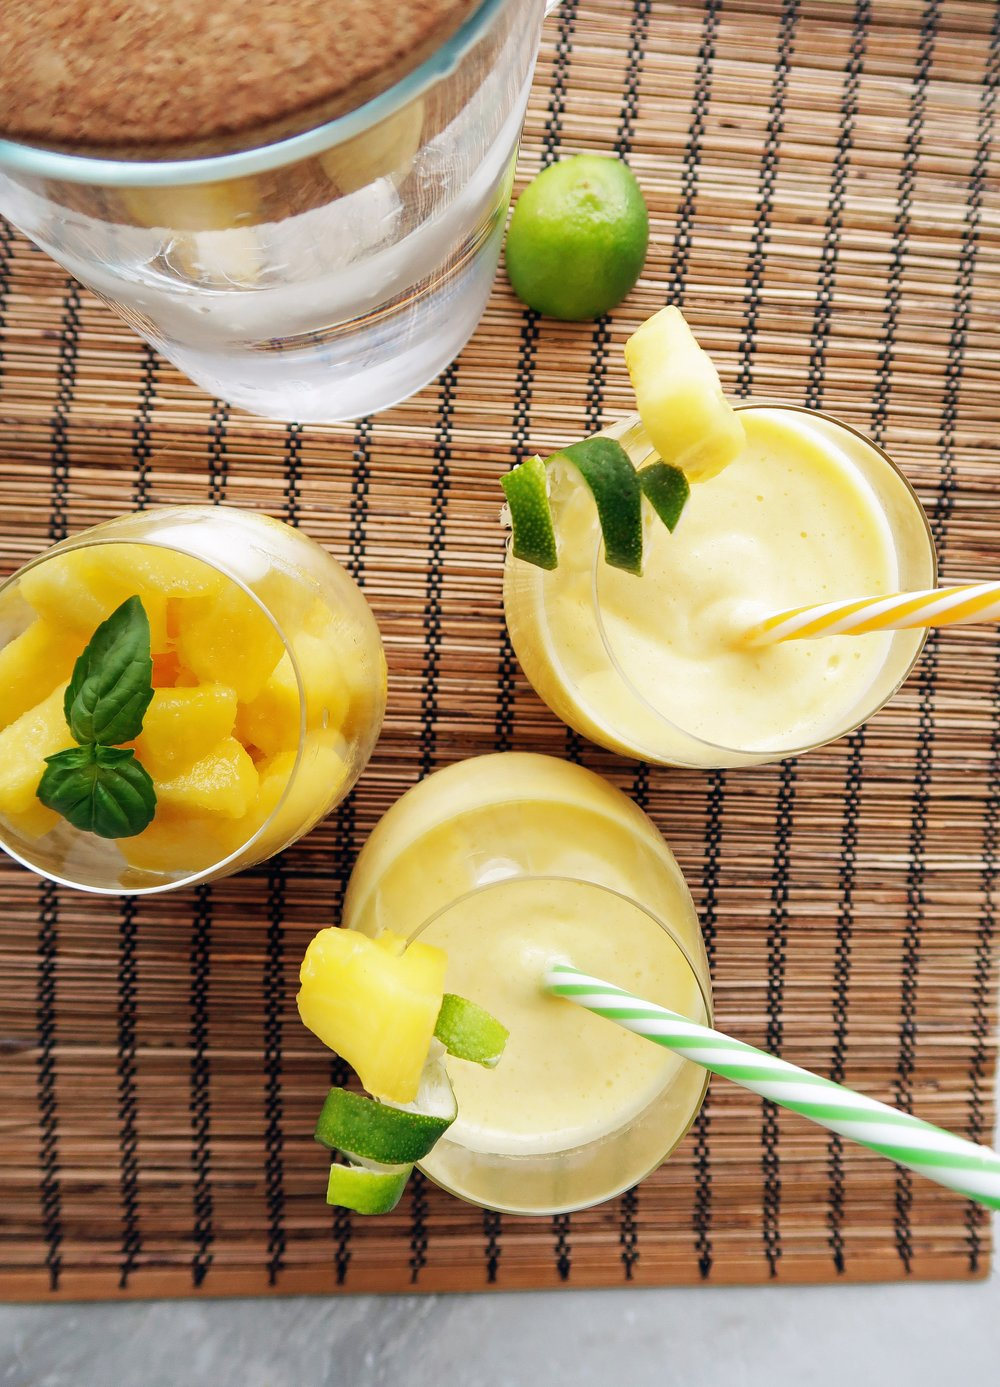 3-Ingredient Pineapple Coconut Water Slushies: A quick, easy, and refreshing drink that's perfect for summer. www.yayforfood.com